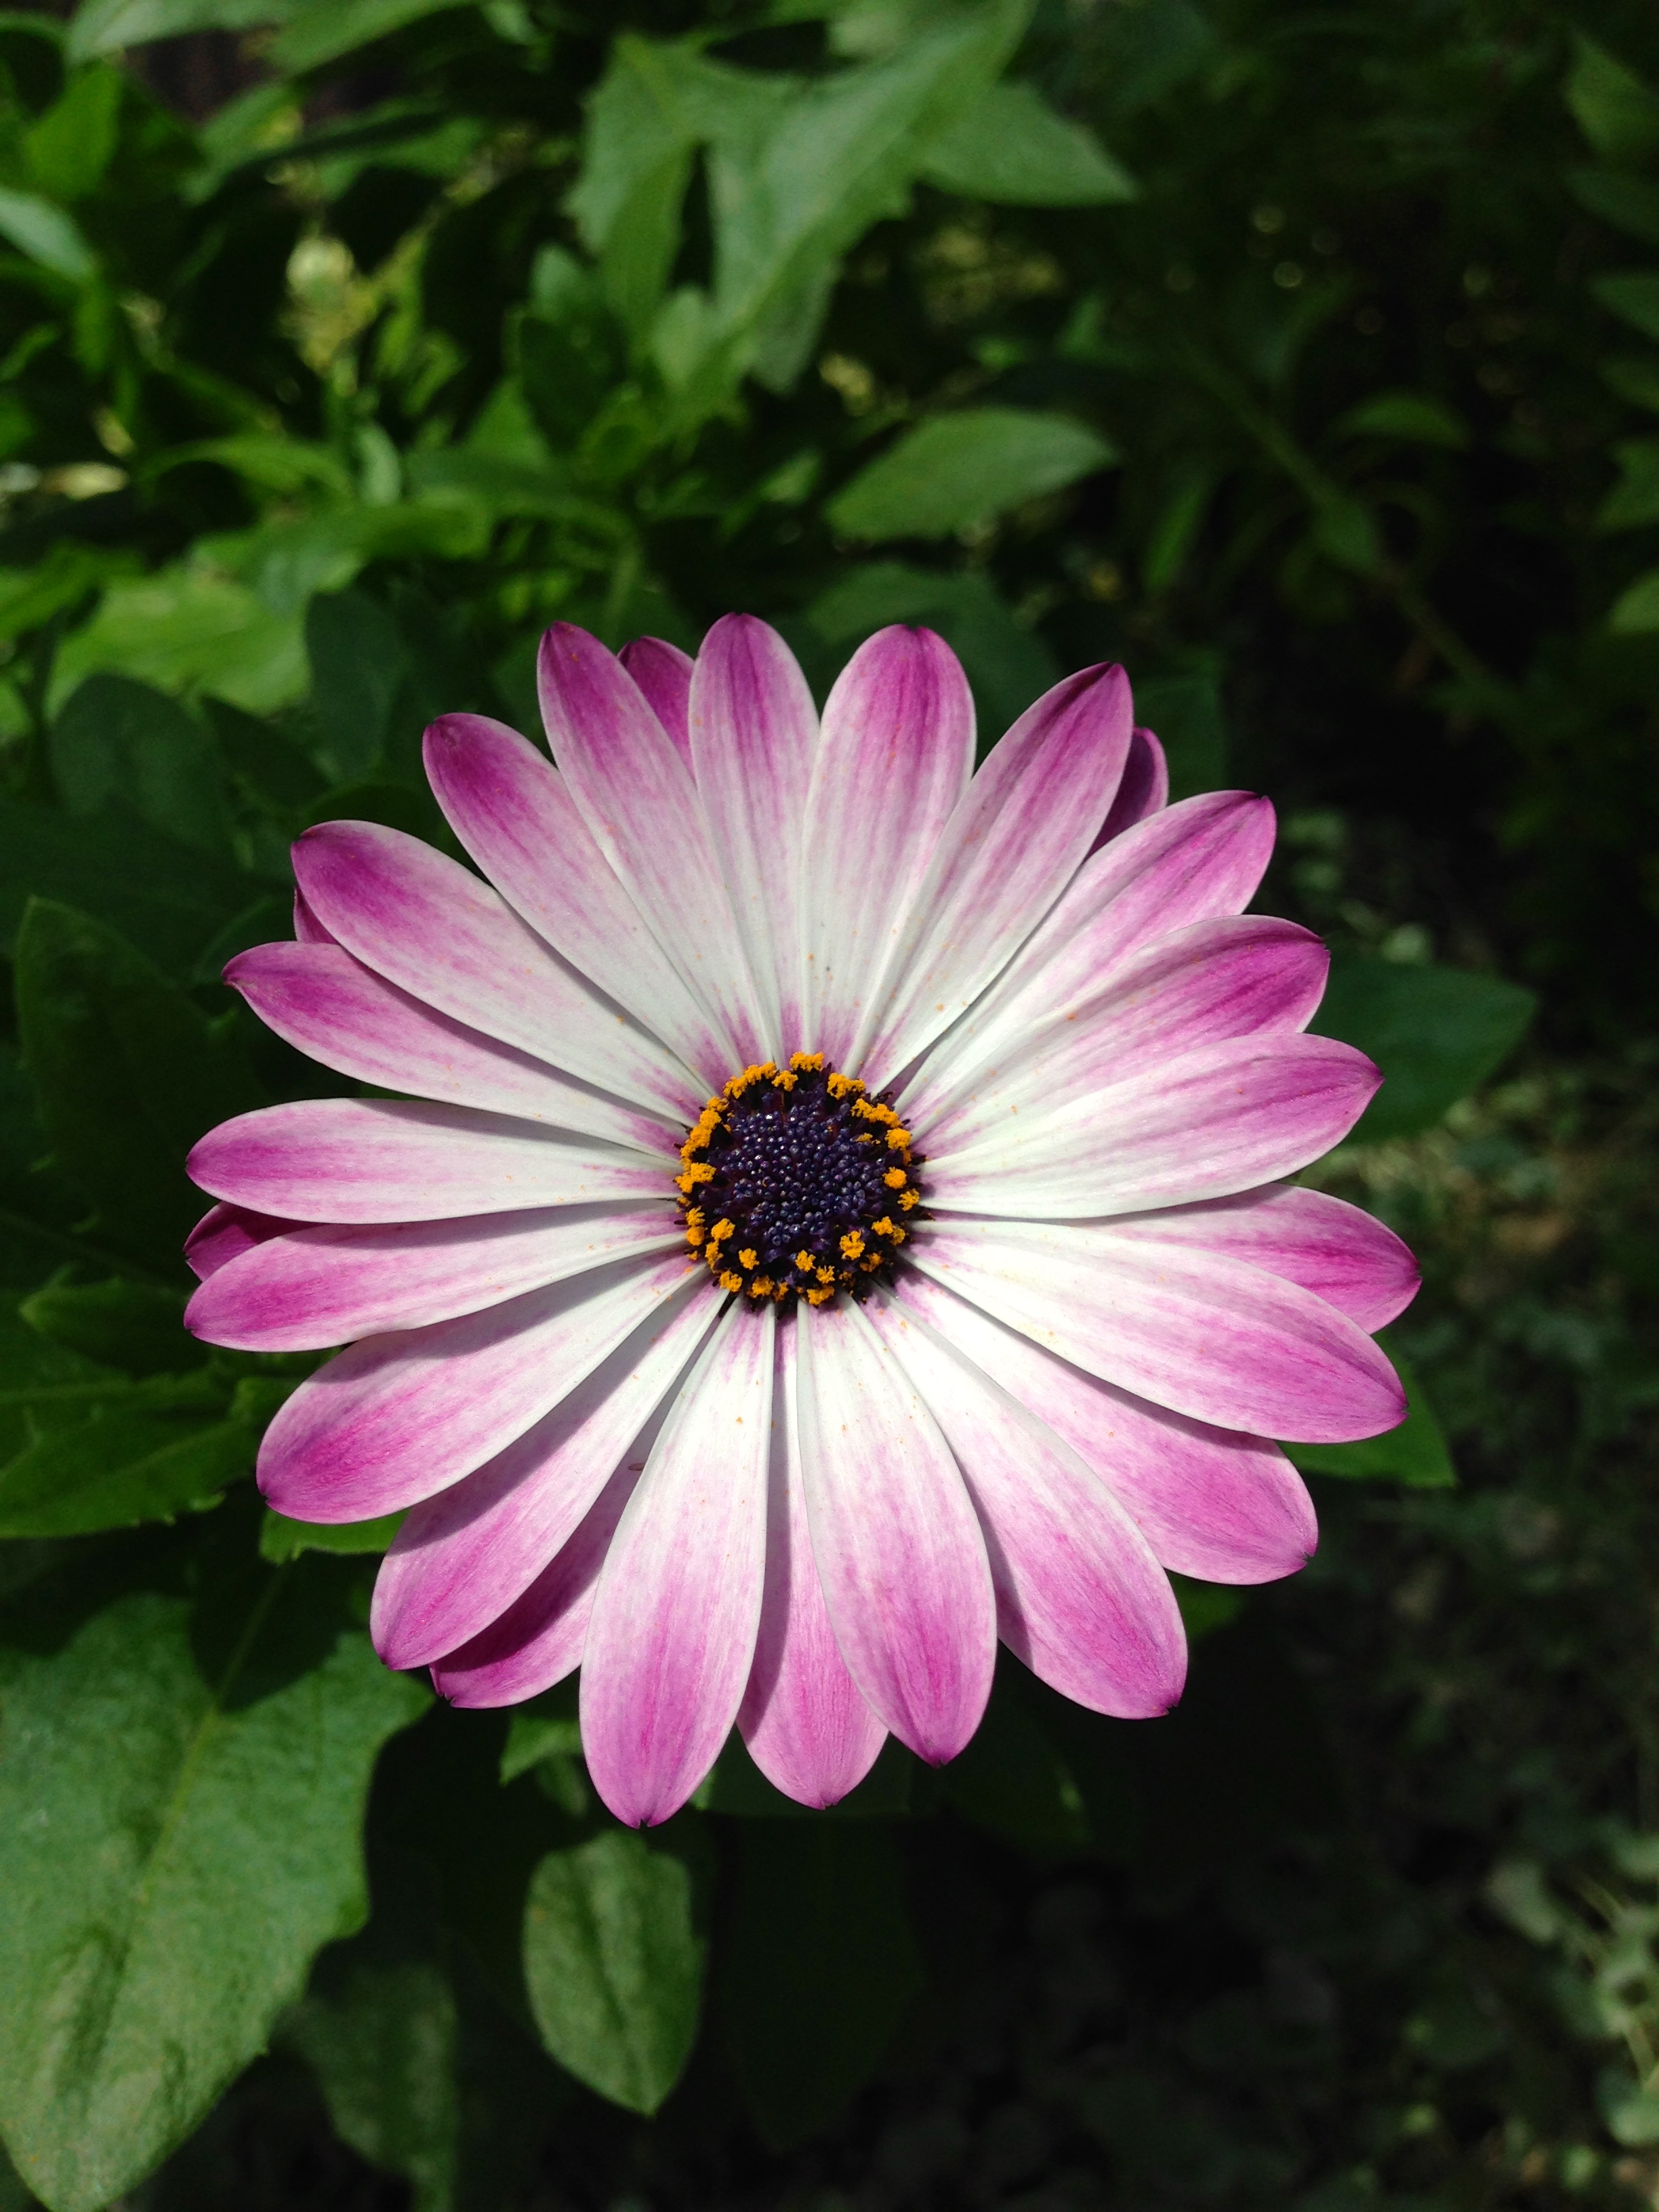 Flower Of The Day July 16 2015 Blue Eyed Daisy Cocoaevenings